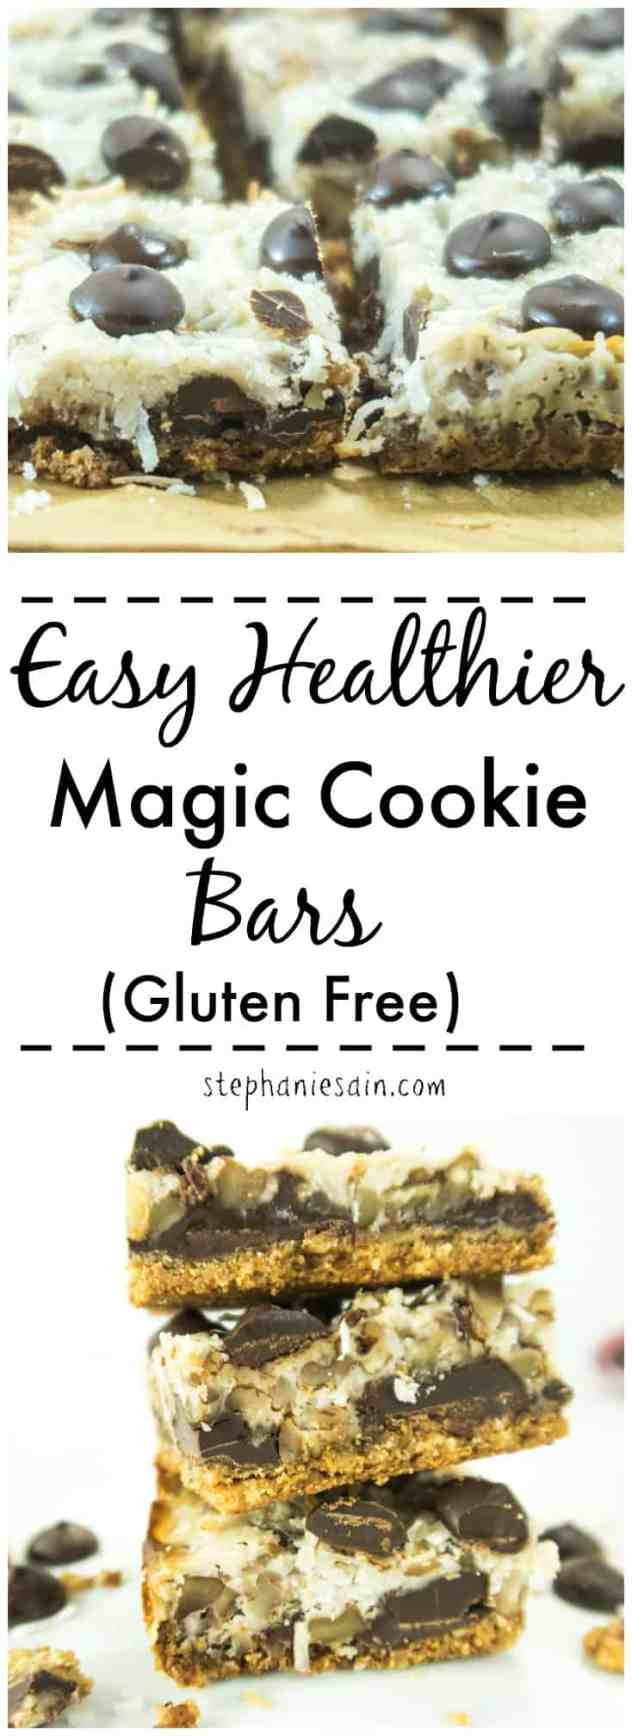 Easy Healthier Magic Cookie Bars are a healthier, lightened up version of an age old favorite. Made without added refined sugars, Vegan & Paleo friendly.